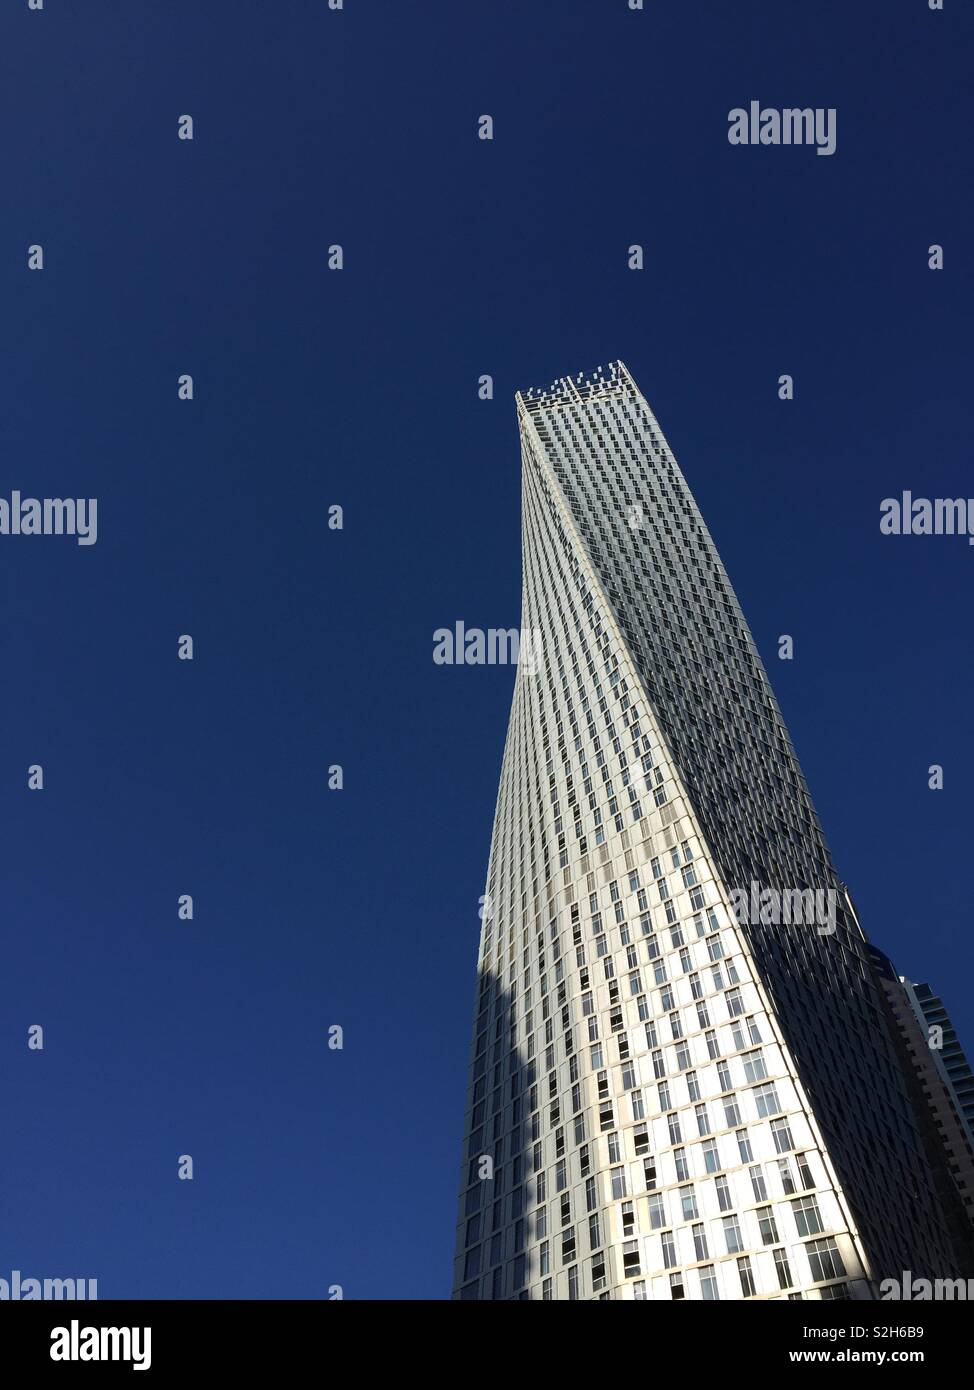 Cayan Tower in Dubai. Stunning from every angle. - Stock Image